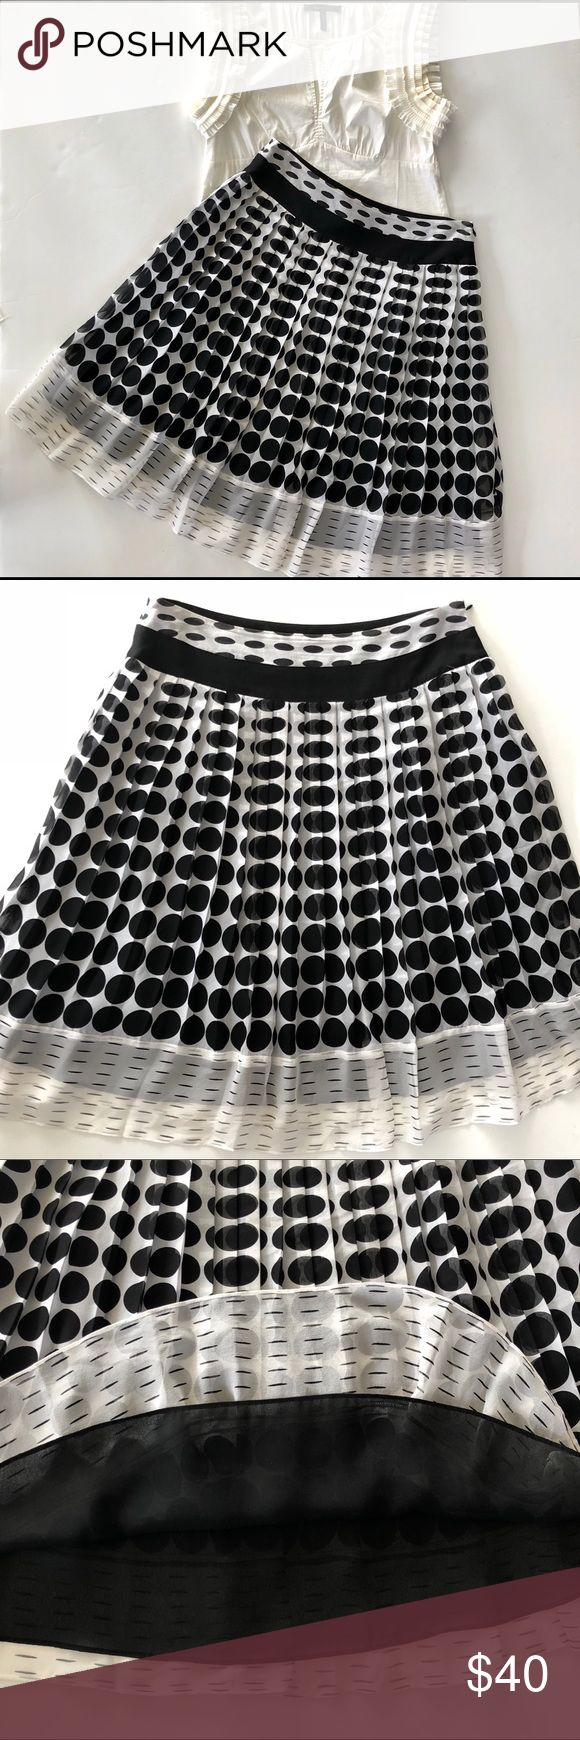 "Alfani Silk Polka Dot Skirt Gorgeous pleated silk twirling skirt with polka dot pattern and dashed hem.  It has a 100% Polyester Black underlay.  There is a hidden side zipper with hook & eye.  It's ivory/ black and looks stunning on. Size 8 Petite.  Approx Measurements 15"" waist and 24"" length Alfani Skirts Midi"